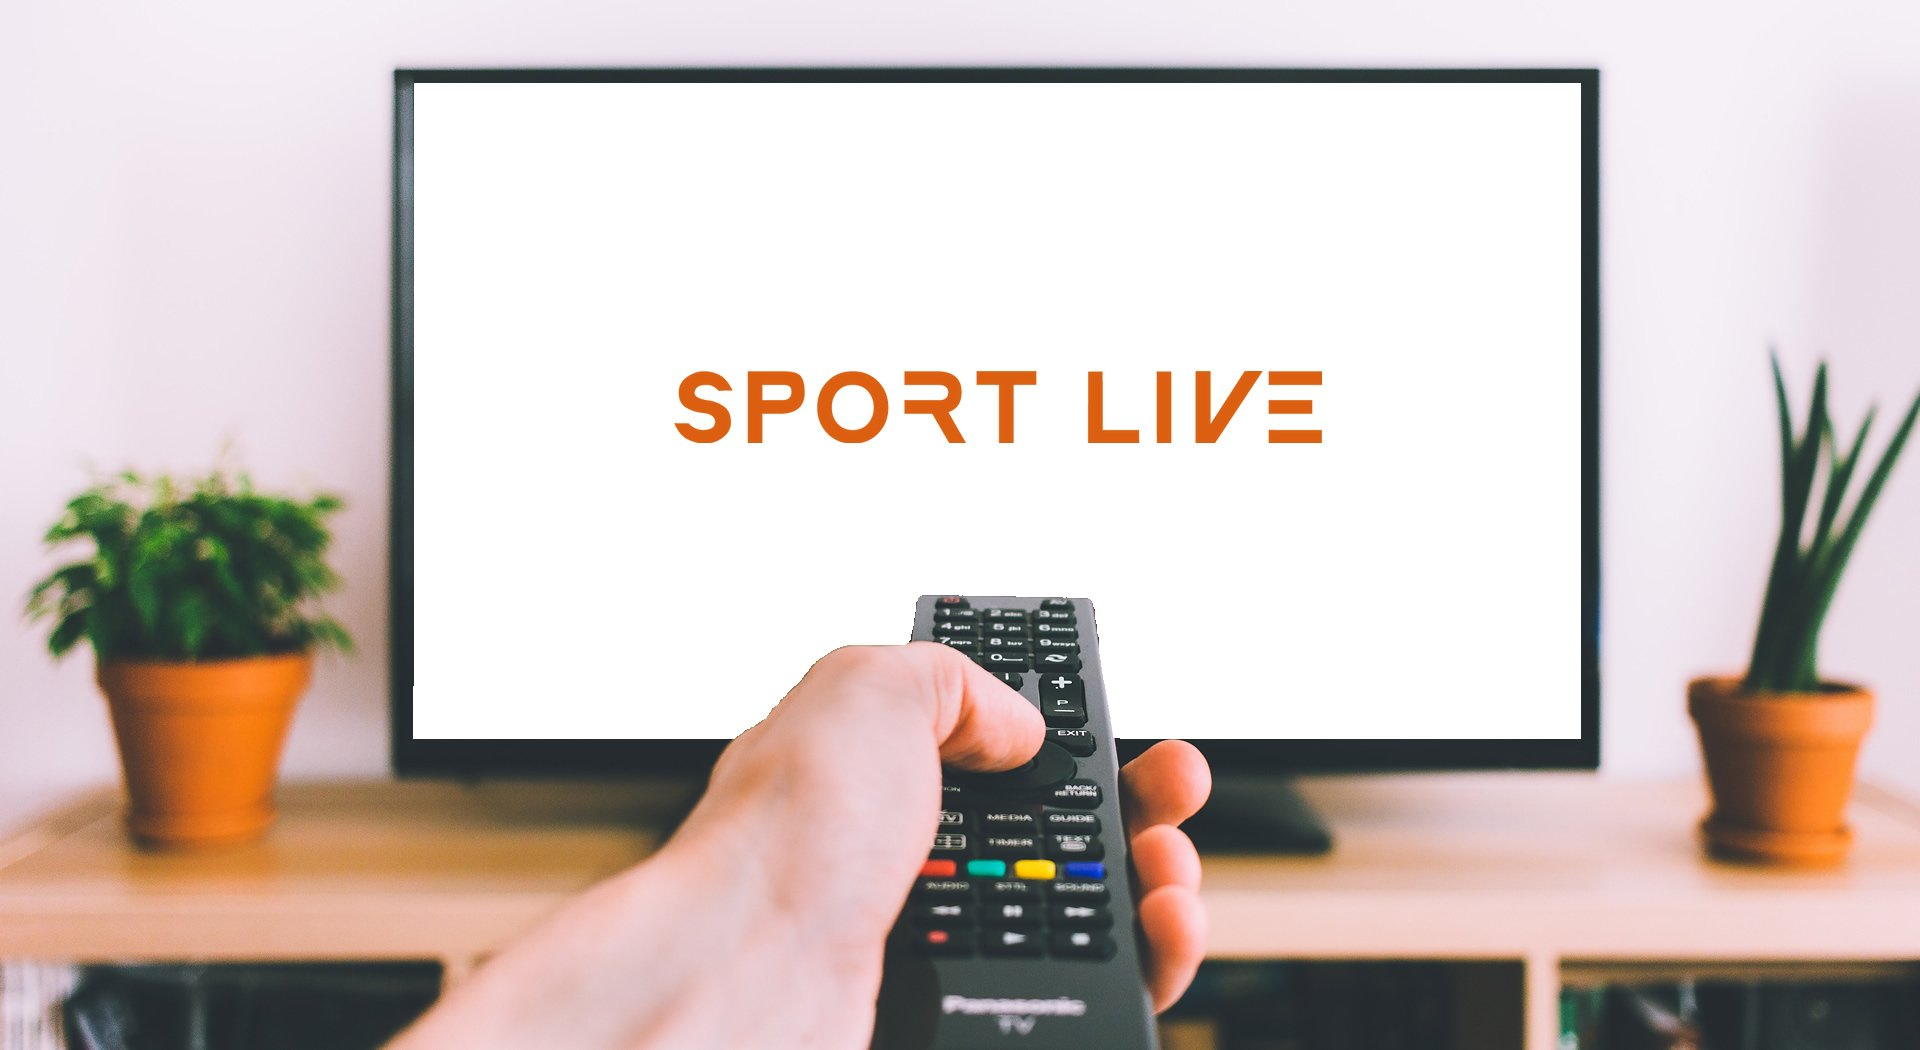 Sport Live ny dansk sports tv-kanal